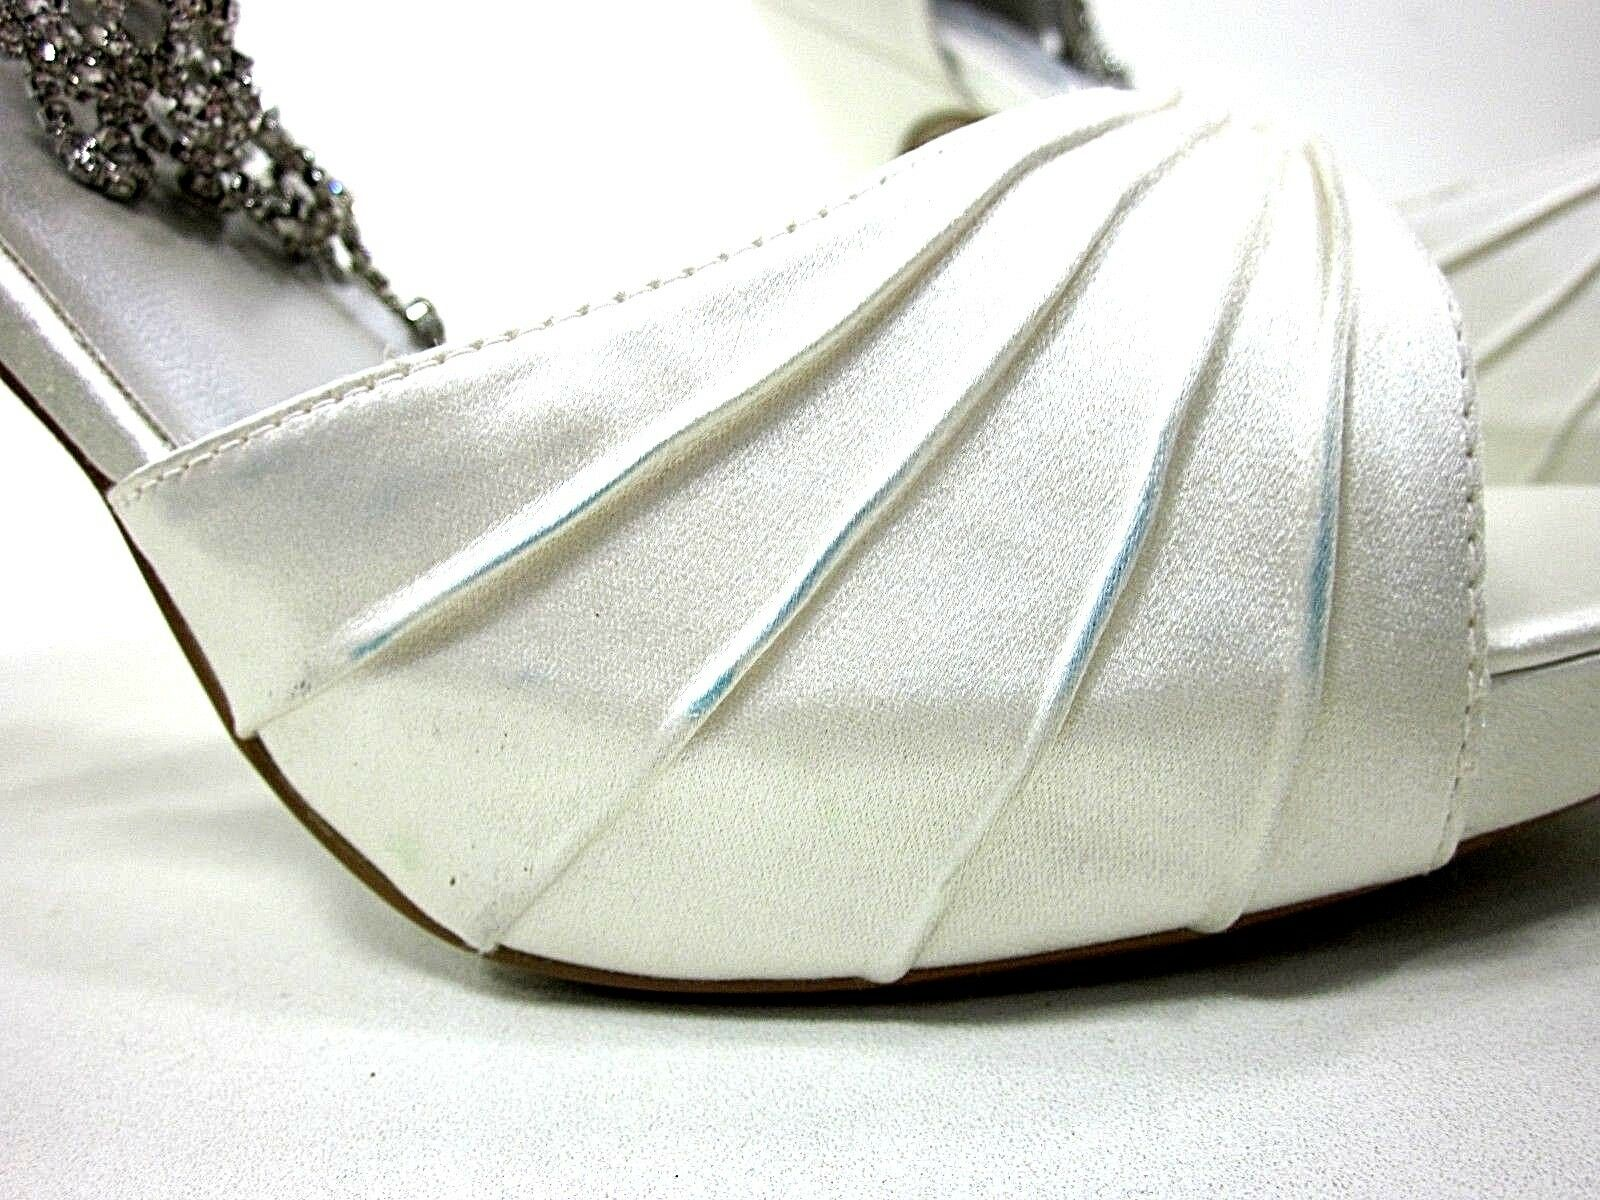 LIZ RENE COUTURE, GUADALUPE PLATFORM SANDAL, Donna, WHITE SILK,10.5M,NEW/DEFECT SILK,10.5M,NEW/DEFECT WHITE db9b5c